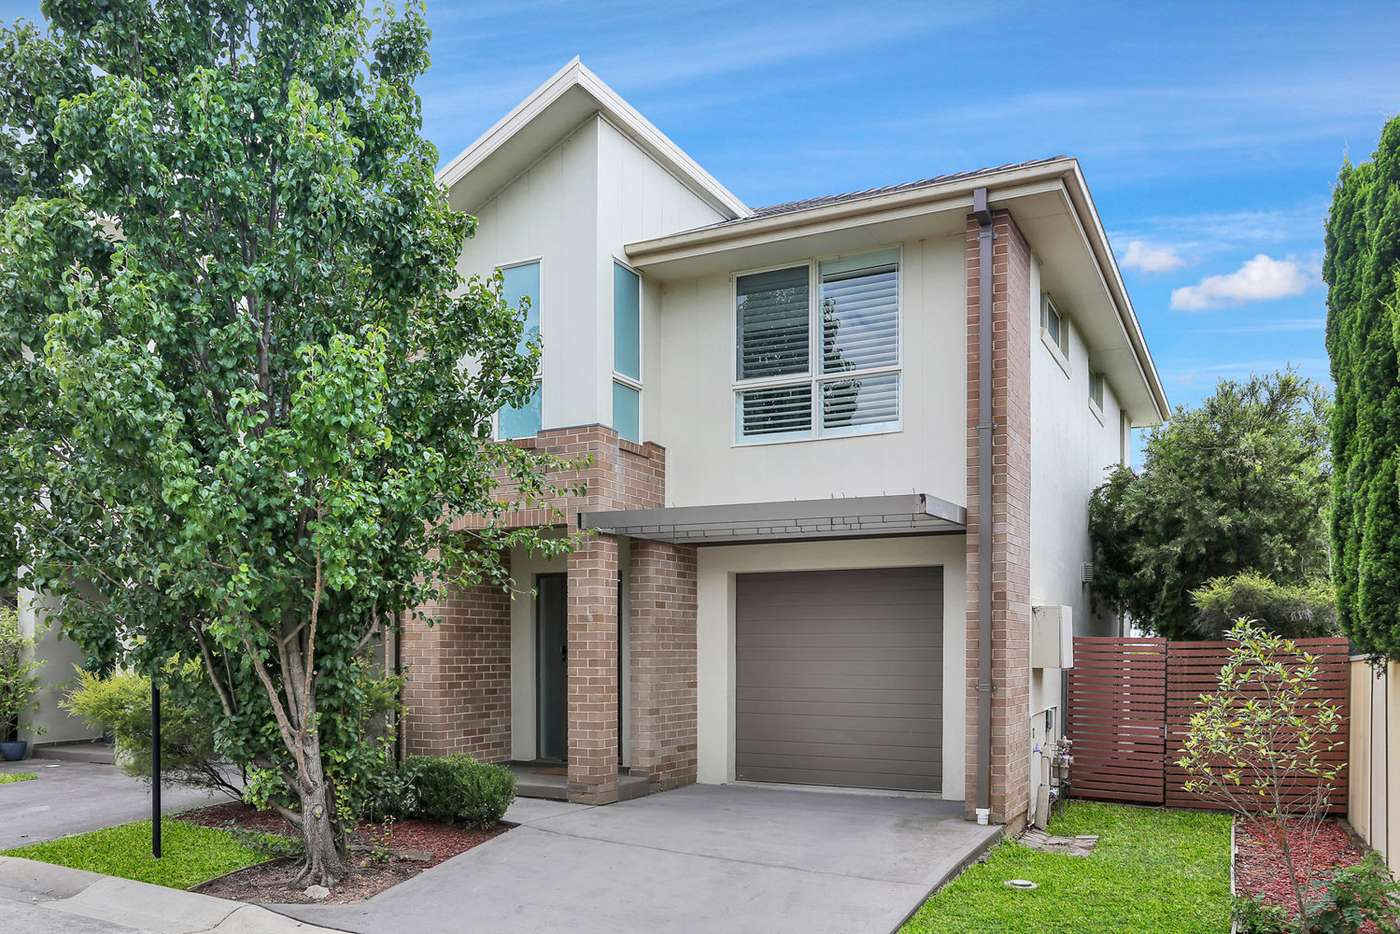 Main view of Homely house listing, 8 67 Burnside Street, Kellyville Ridge NSW 2155